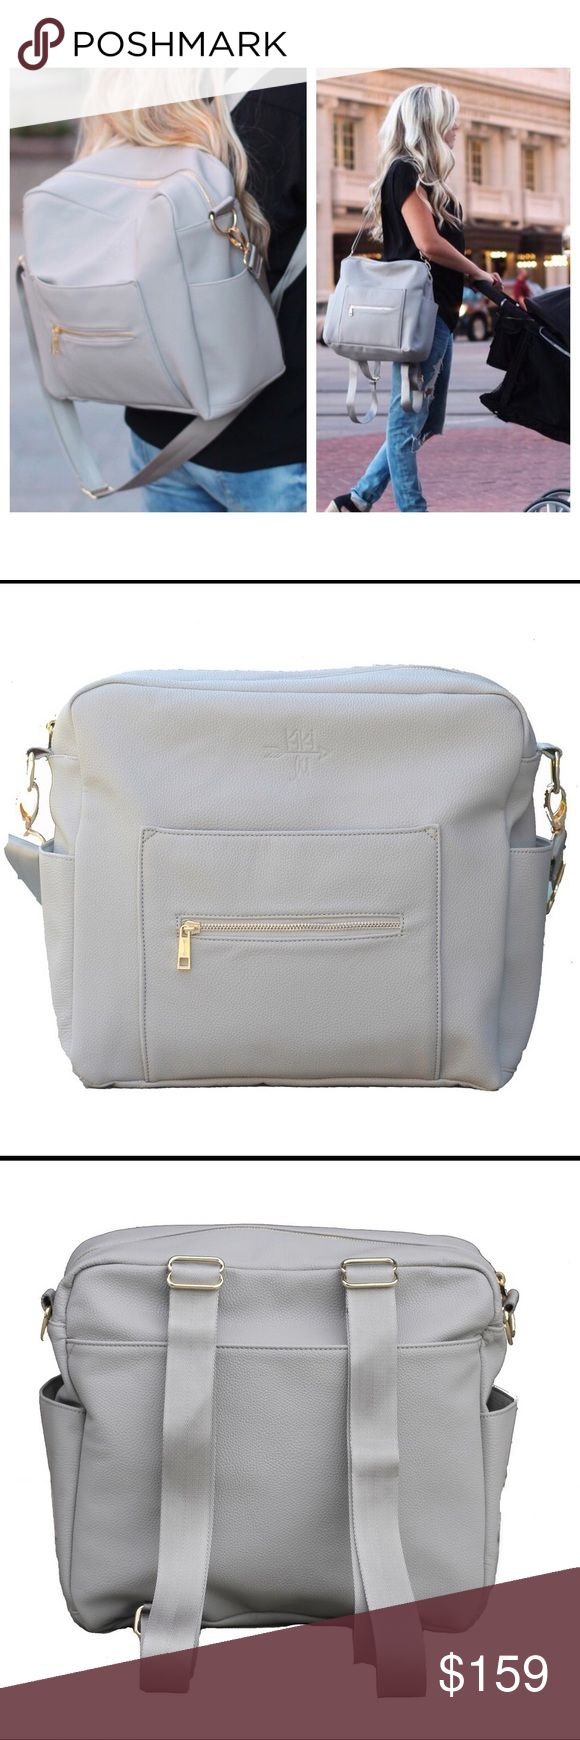 Gray Kiki Lu Diaper Bag This is a super cute diaper bag! It is in the color Gray and made by Kiki Lu designs! It can be worn as a backback or as a messenger bag! This is brand new and retails for $180! Just selling because recieved another similar baby bag as a gift. Kiki Lu Bags Baby Bags